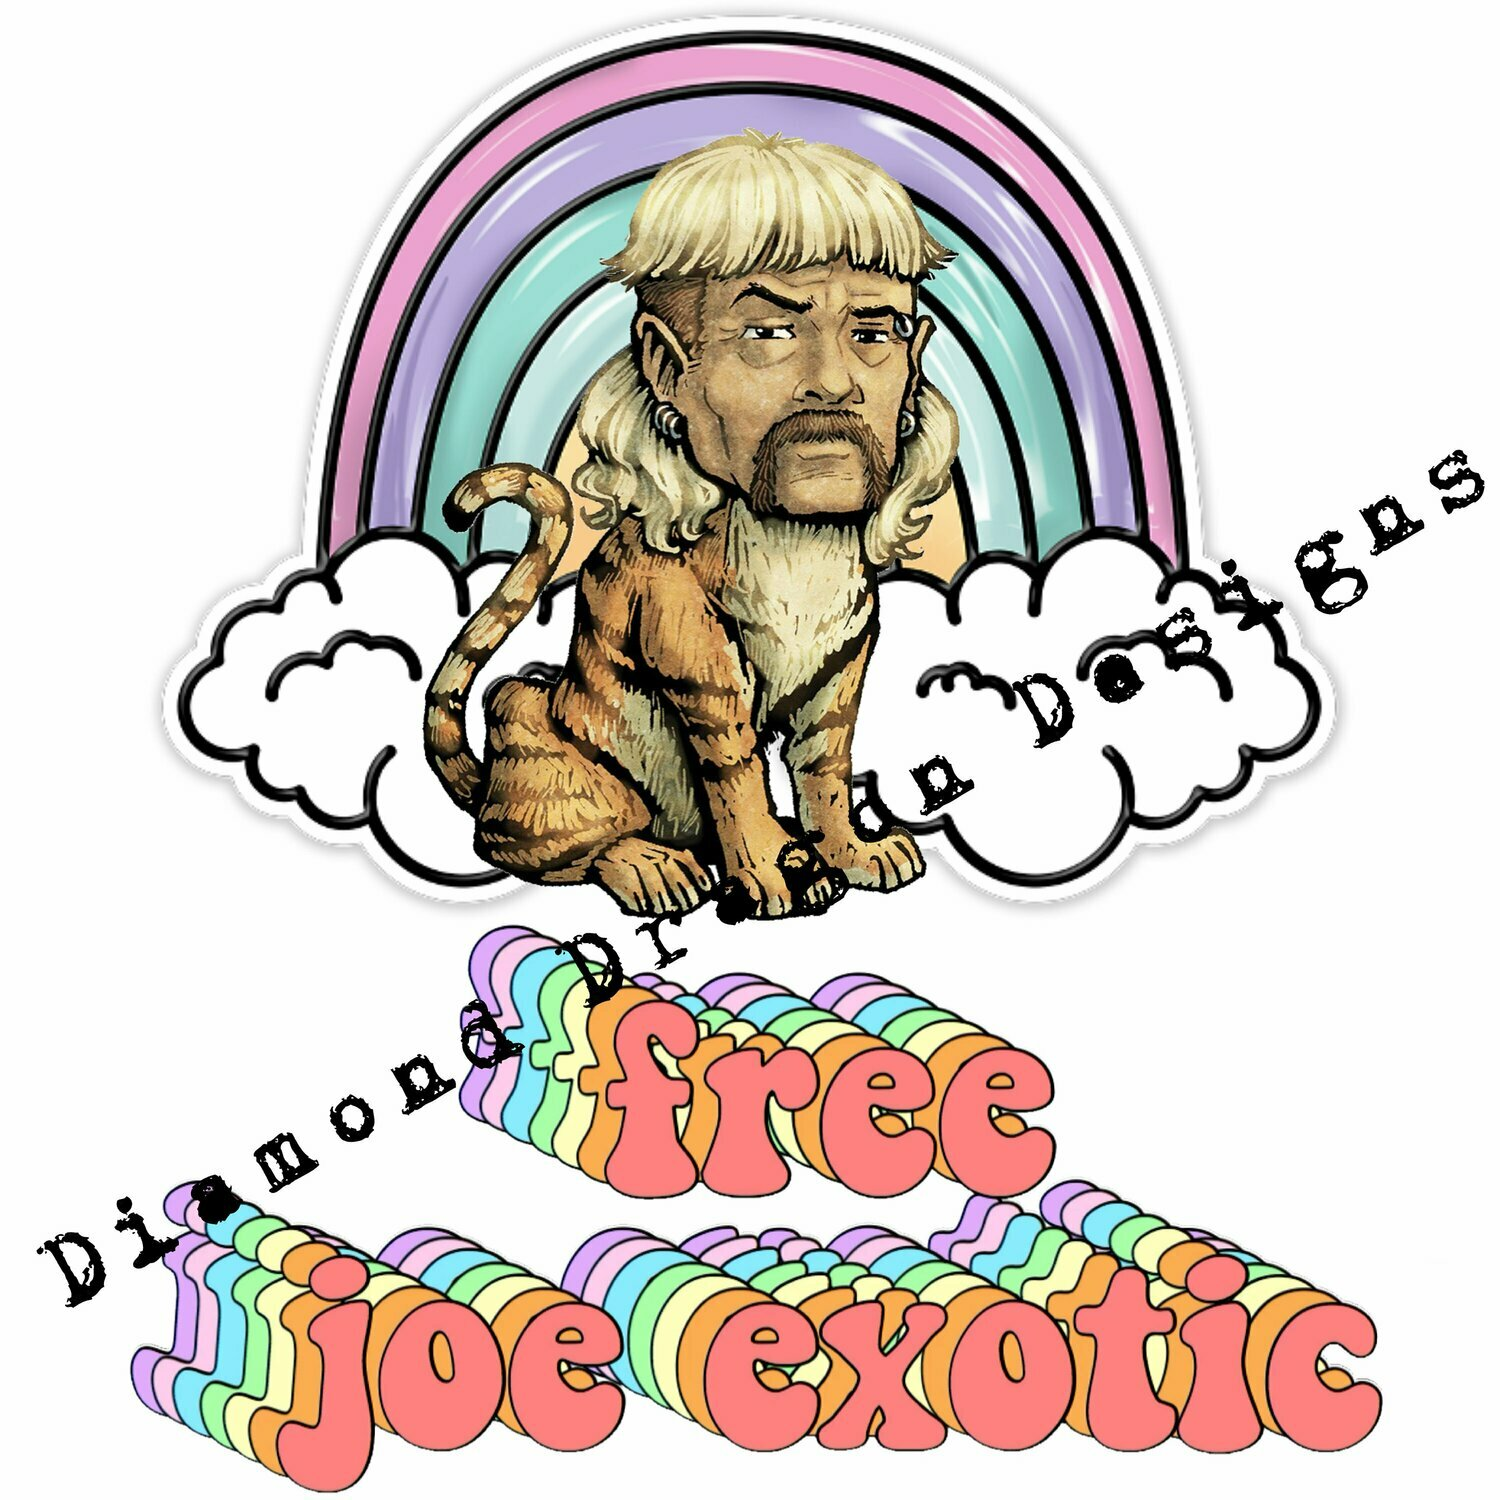 Popular Icons - Tiger King, Joe Exotic, Free Joe Exotic, Rainbow, Waterslide